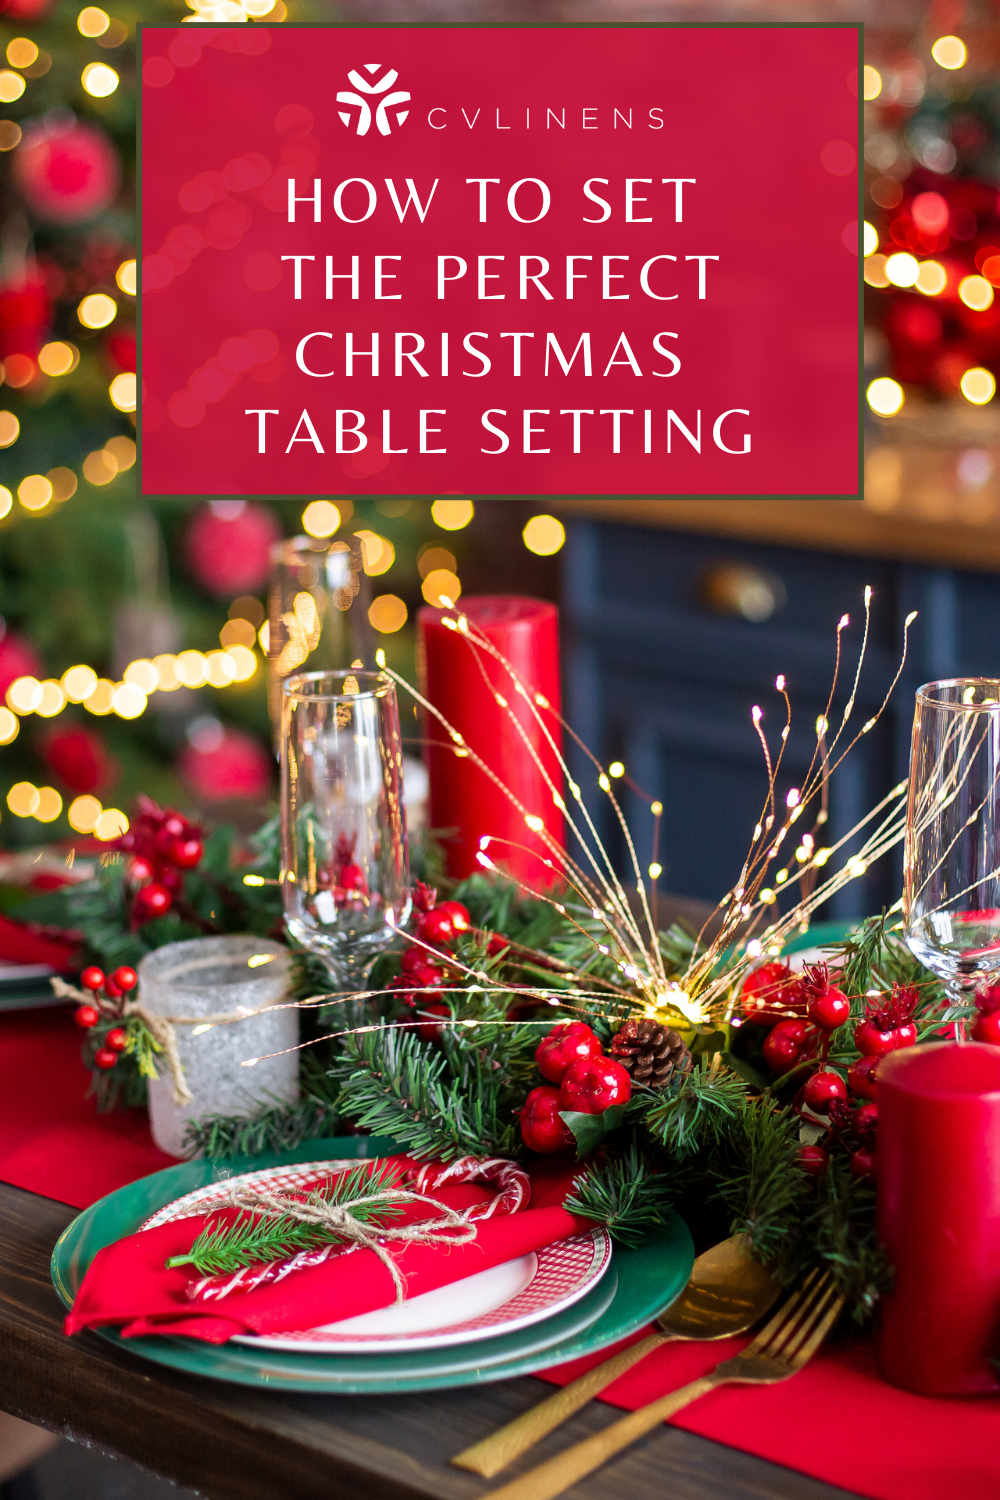 How to set the perfect Christmas table setting?